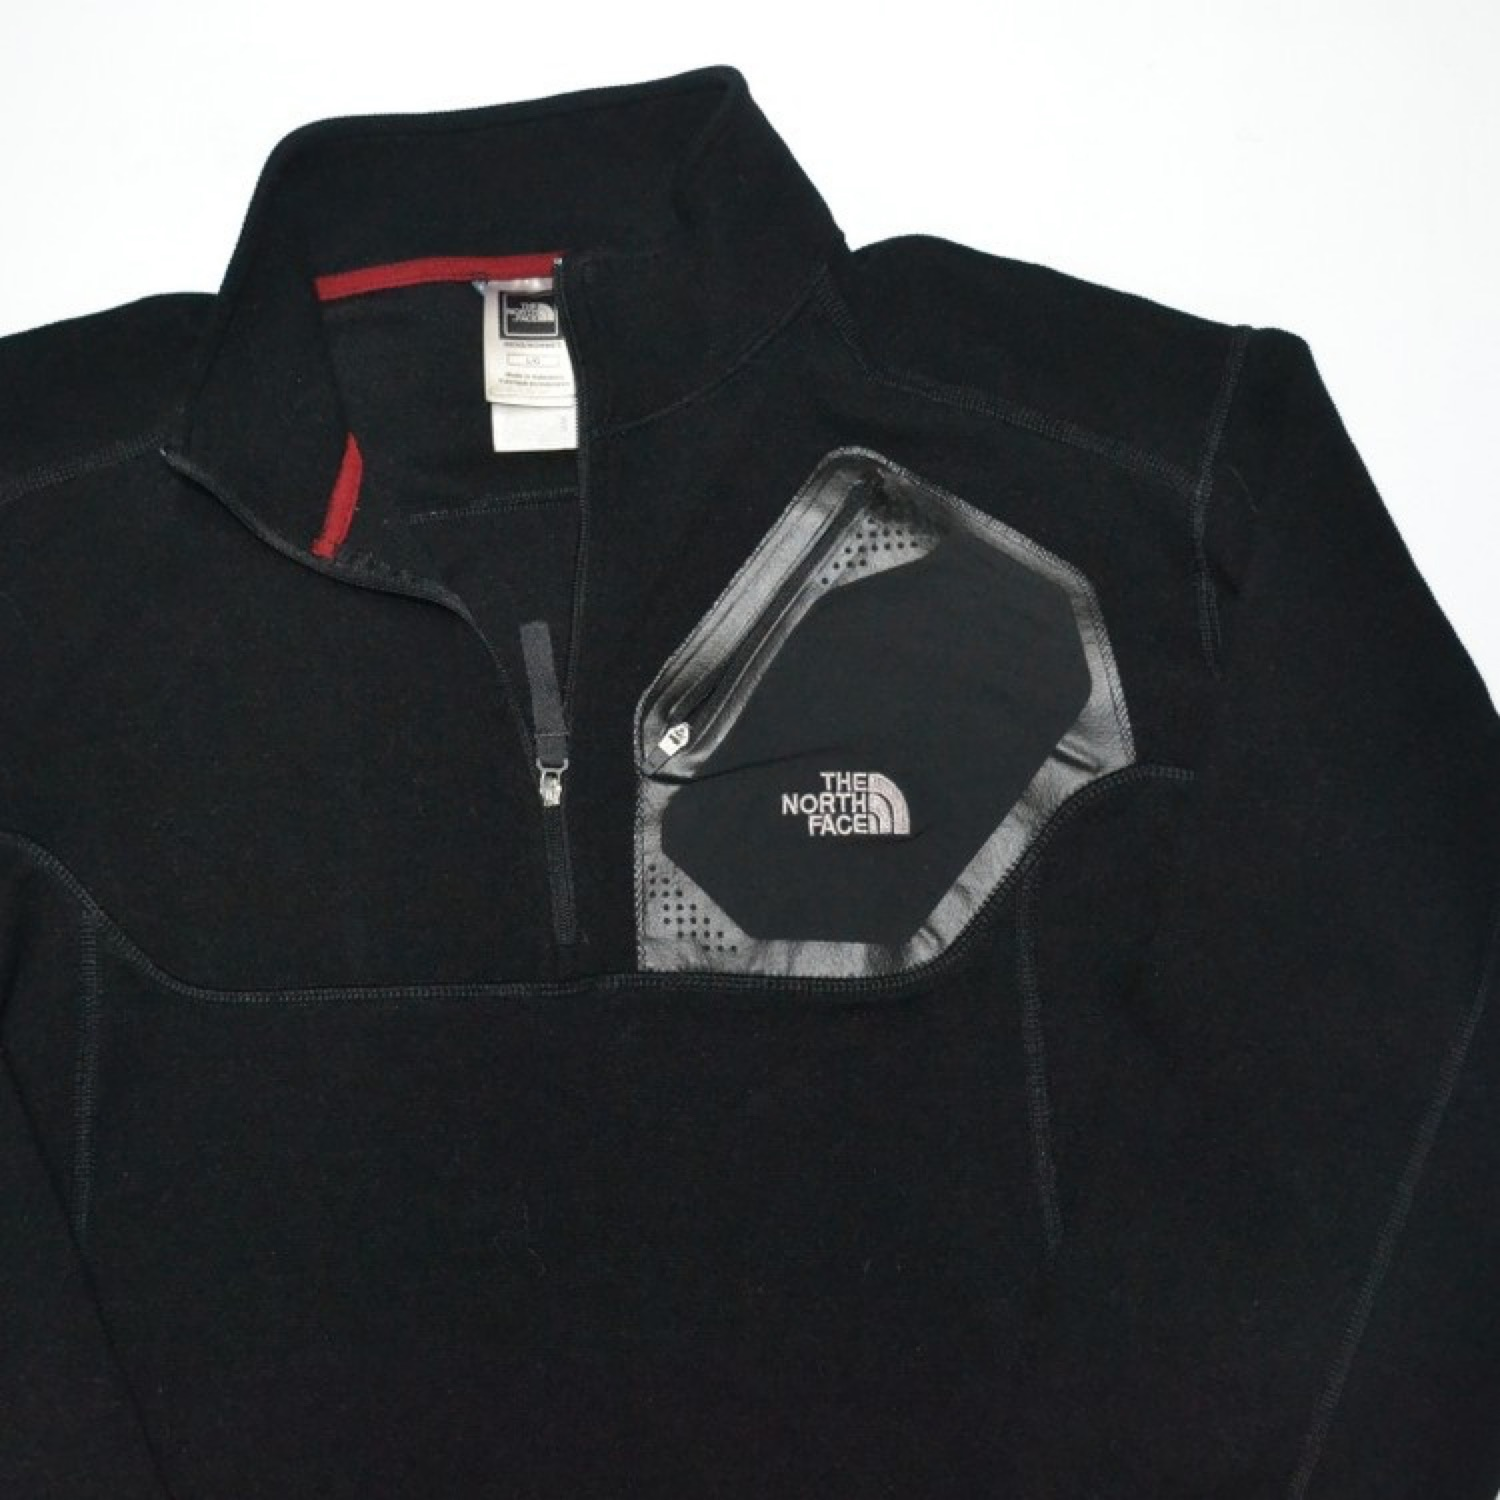 3f83dfe35 The North Face Jacket Sweater Pullover 80S 90S